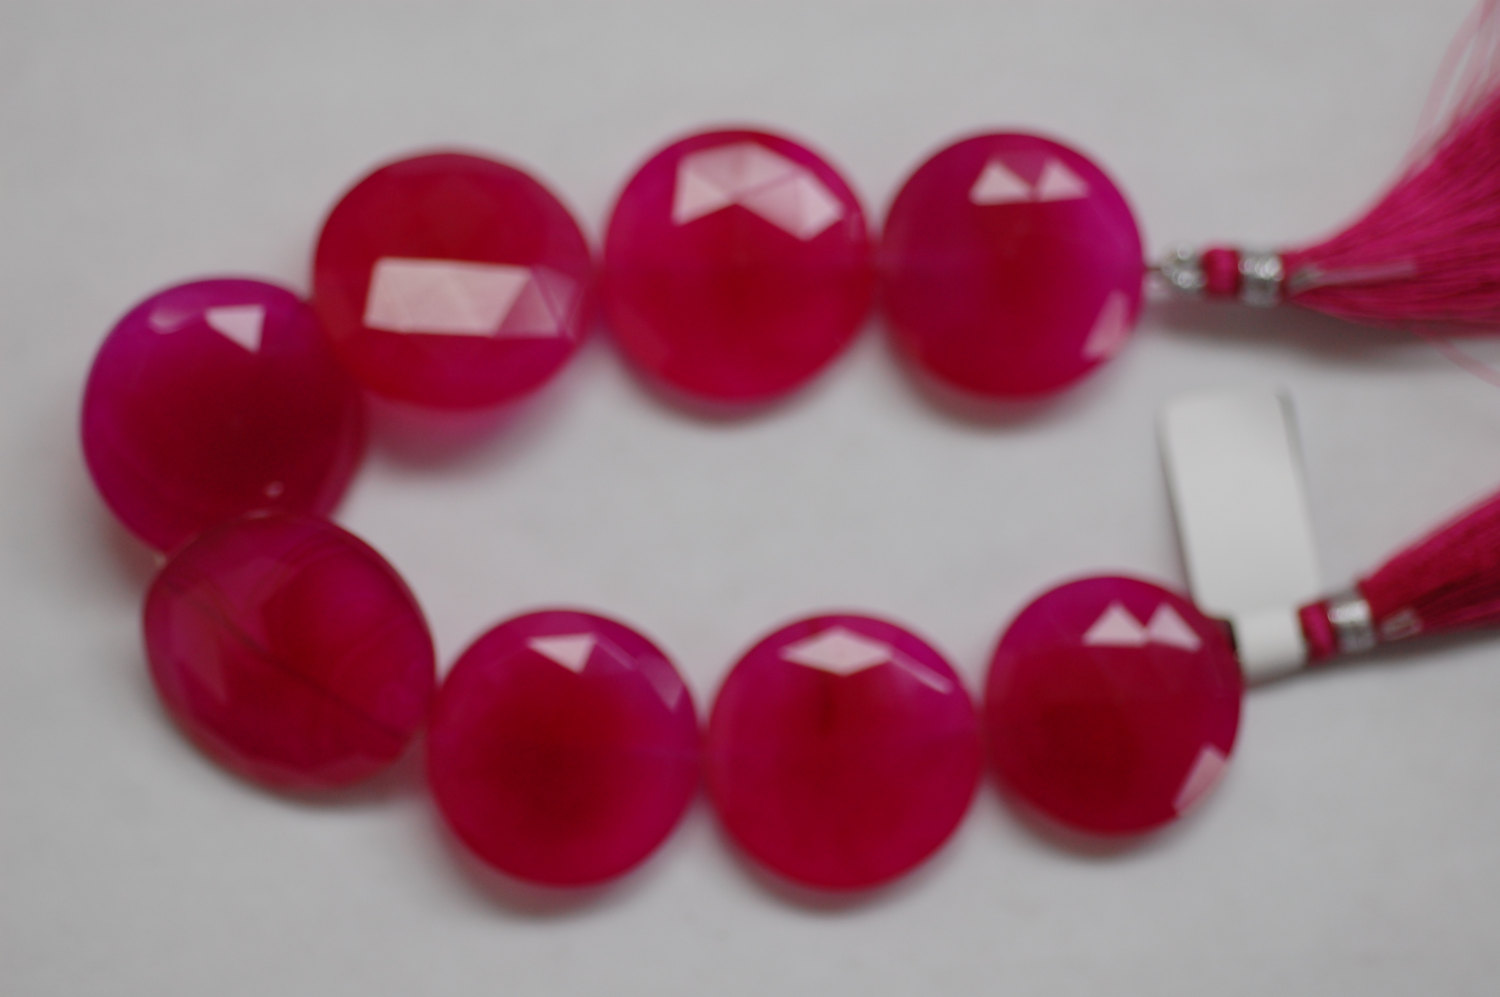 Hot Pink Chalcedony Coins one side Faceted/one side Smooth